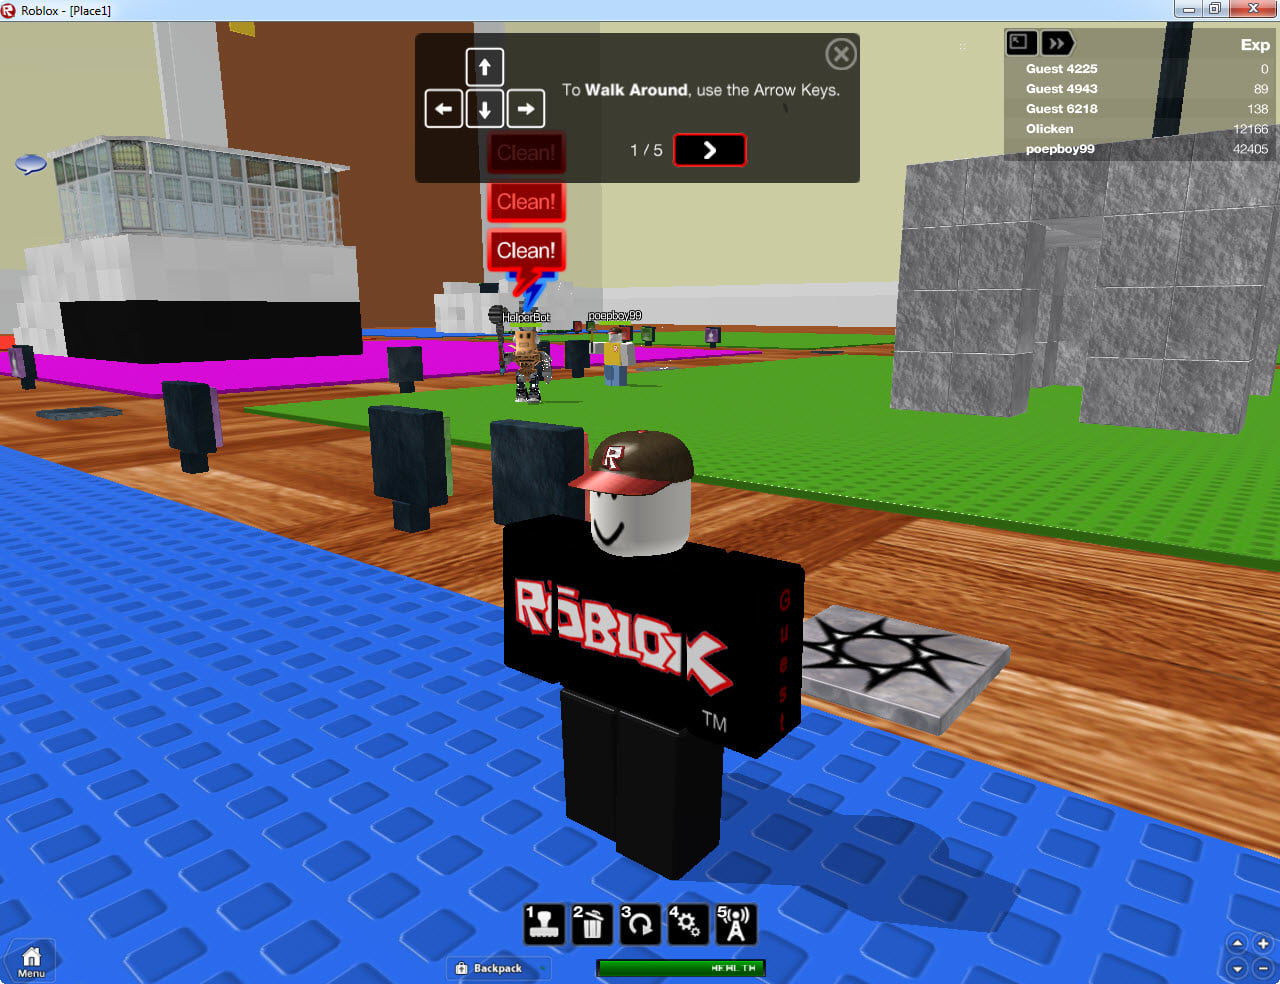 how to hack reason 2 die on roblox